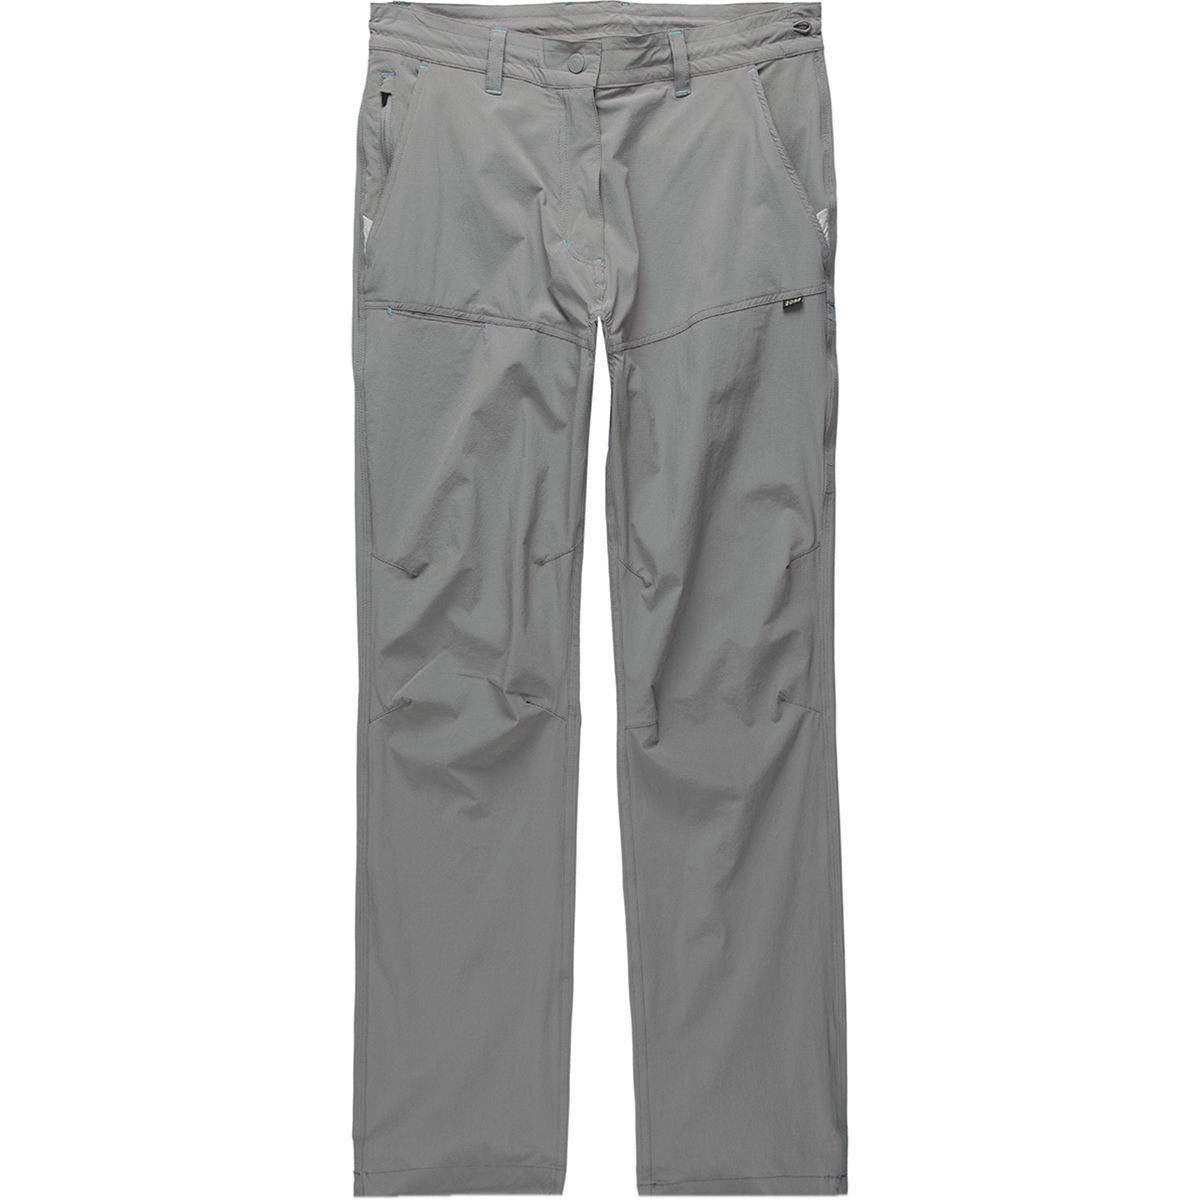 Howler Brothers Shoalwater Tech Pant - Men's